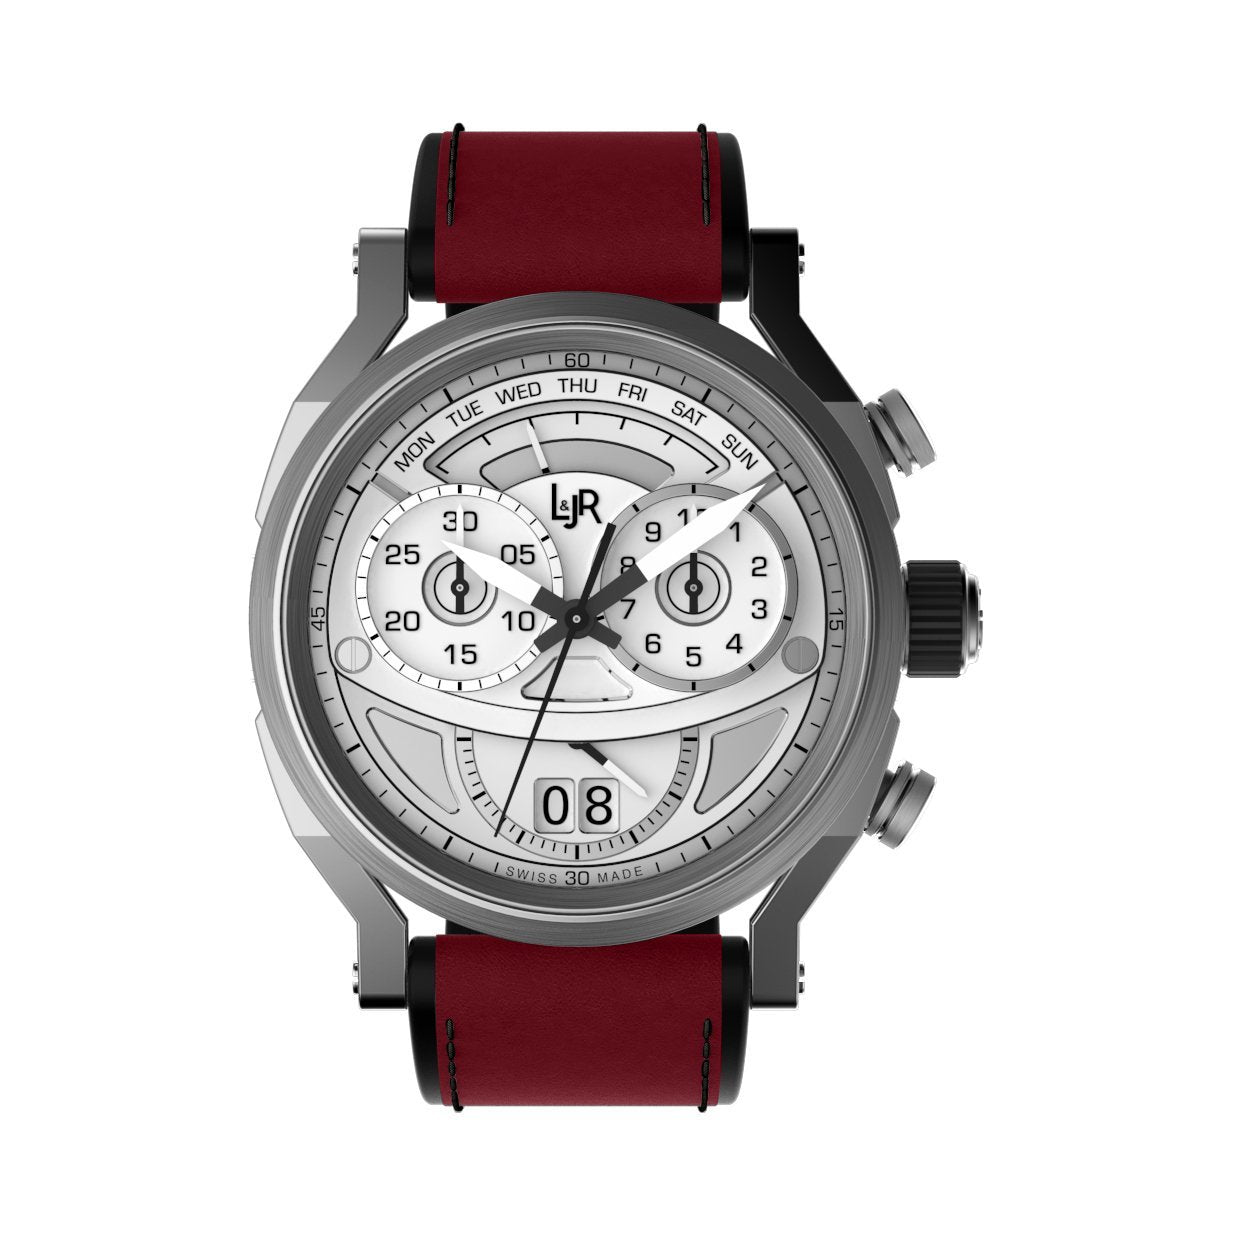 L&Jr Chronograph Day and Date Silver Burgundy - Watches & Crystals